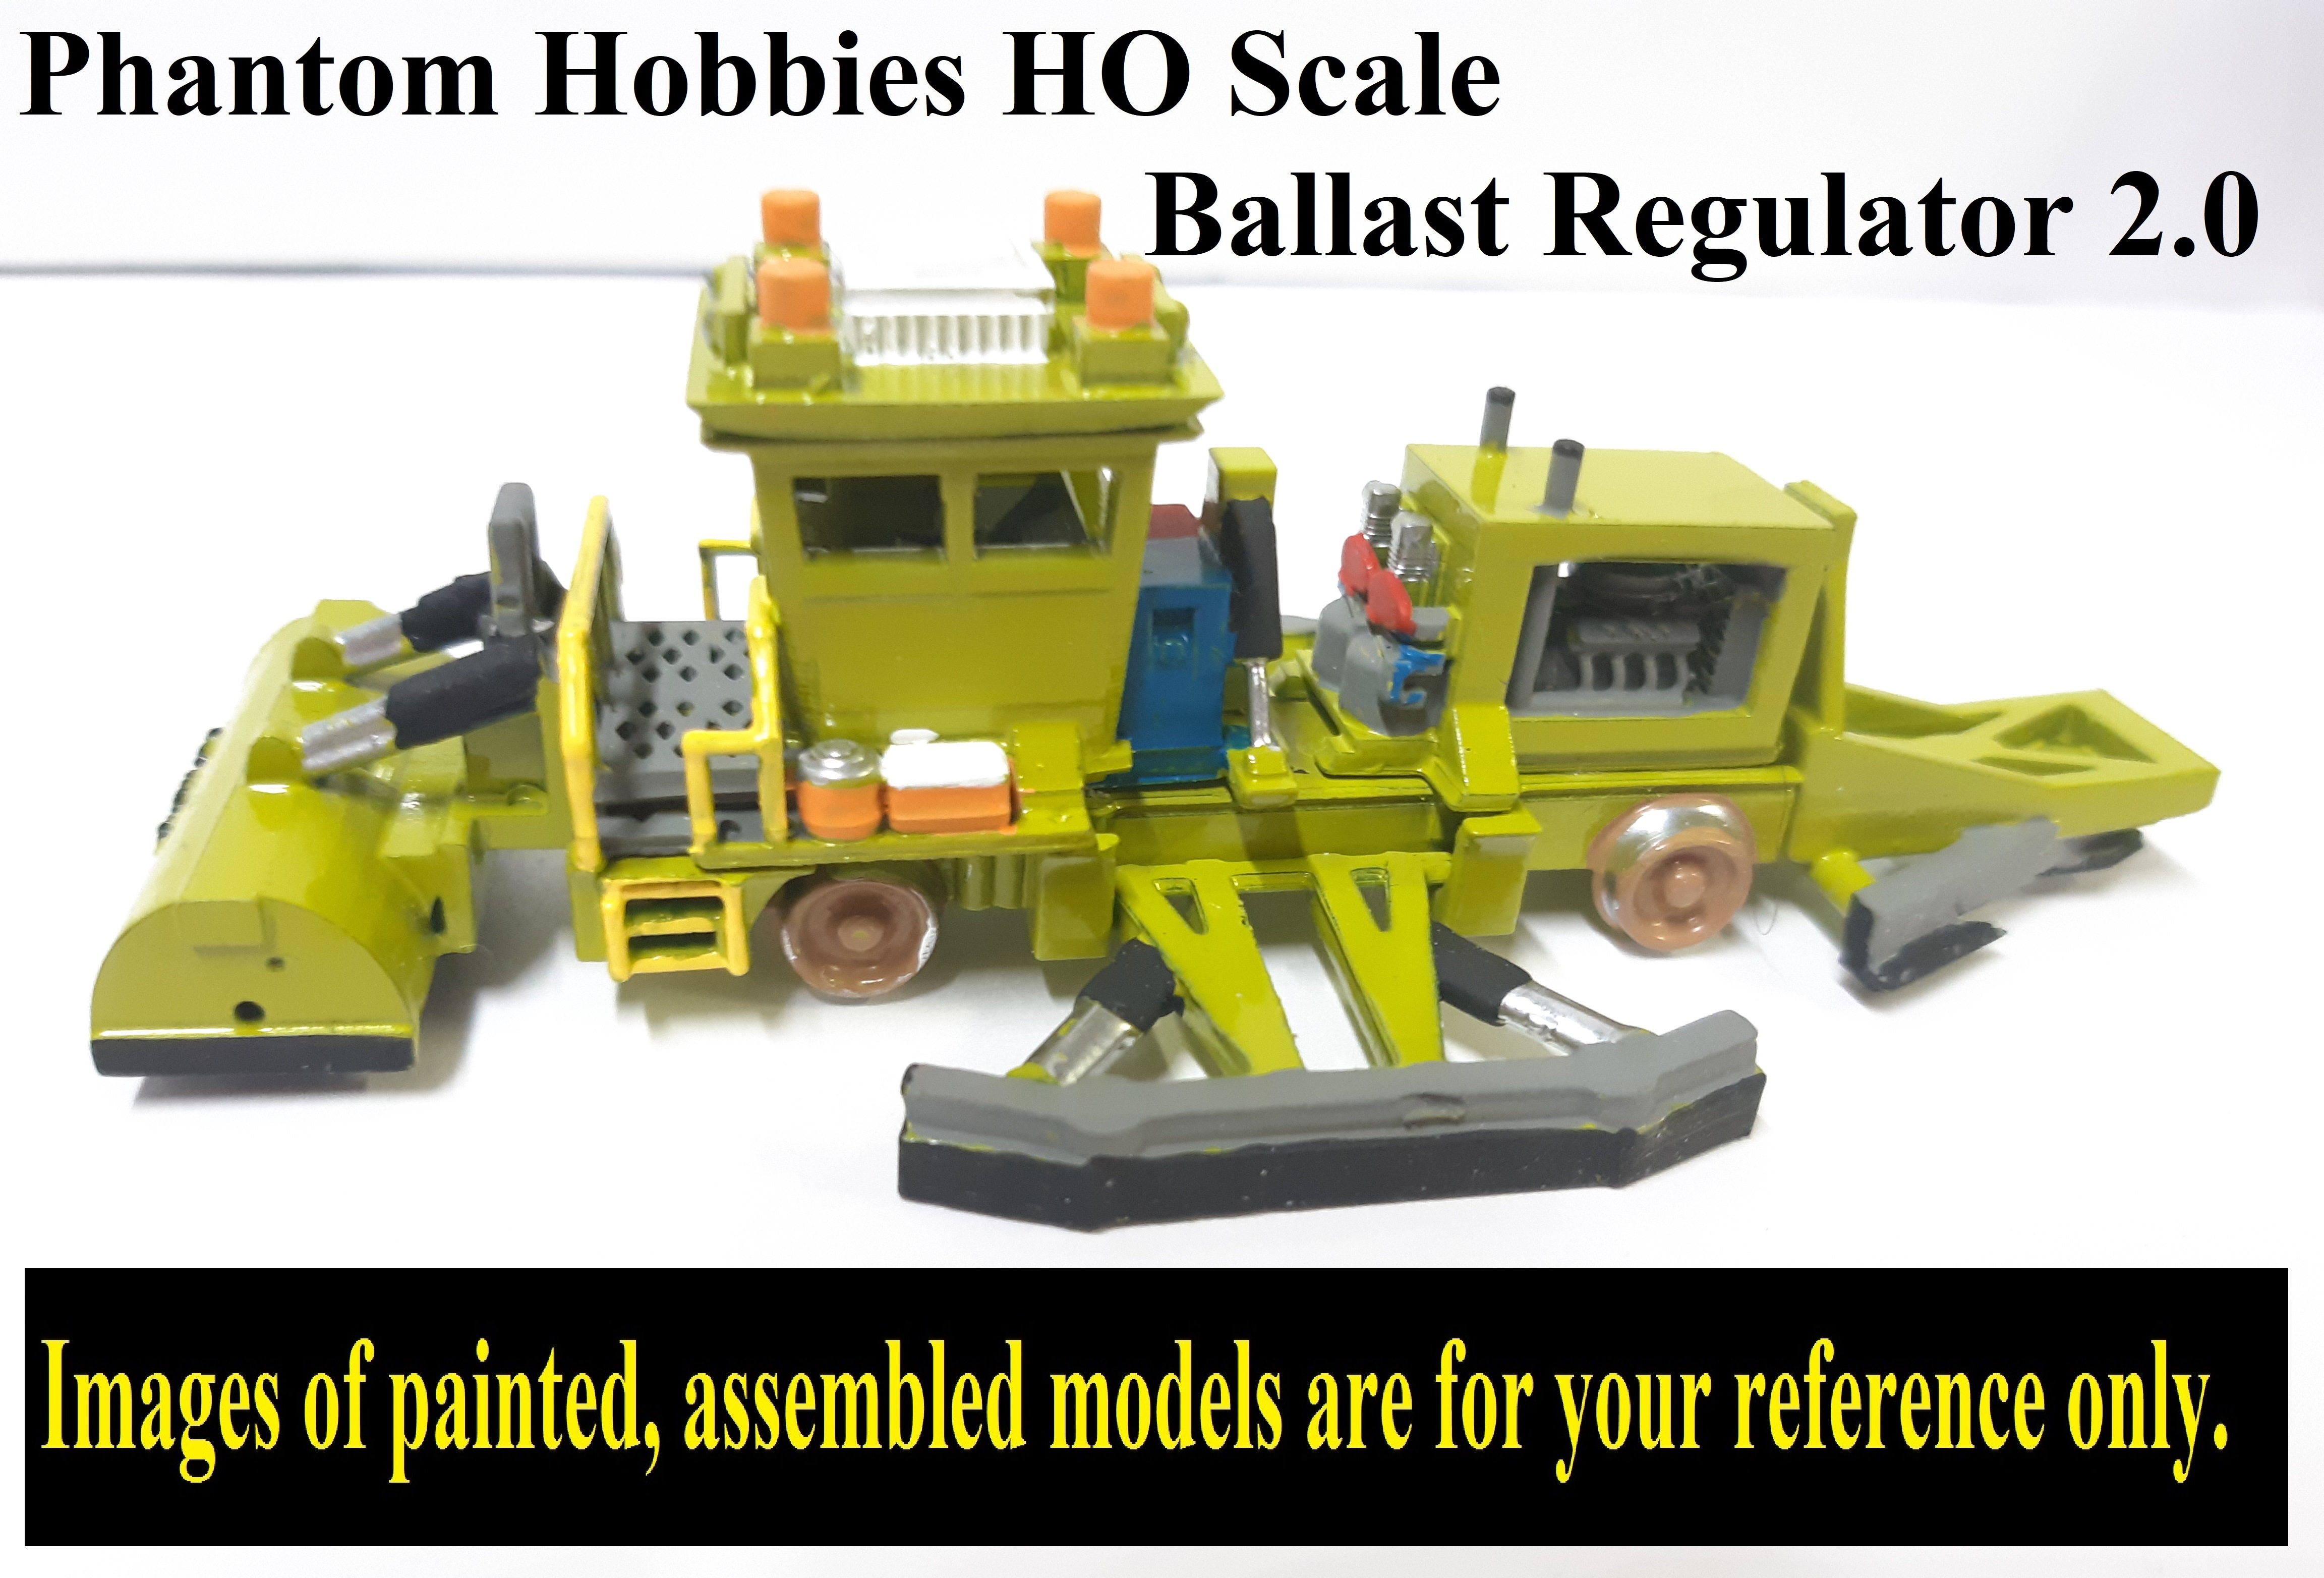 Ho scale ballast regulator 2